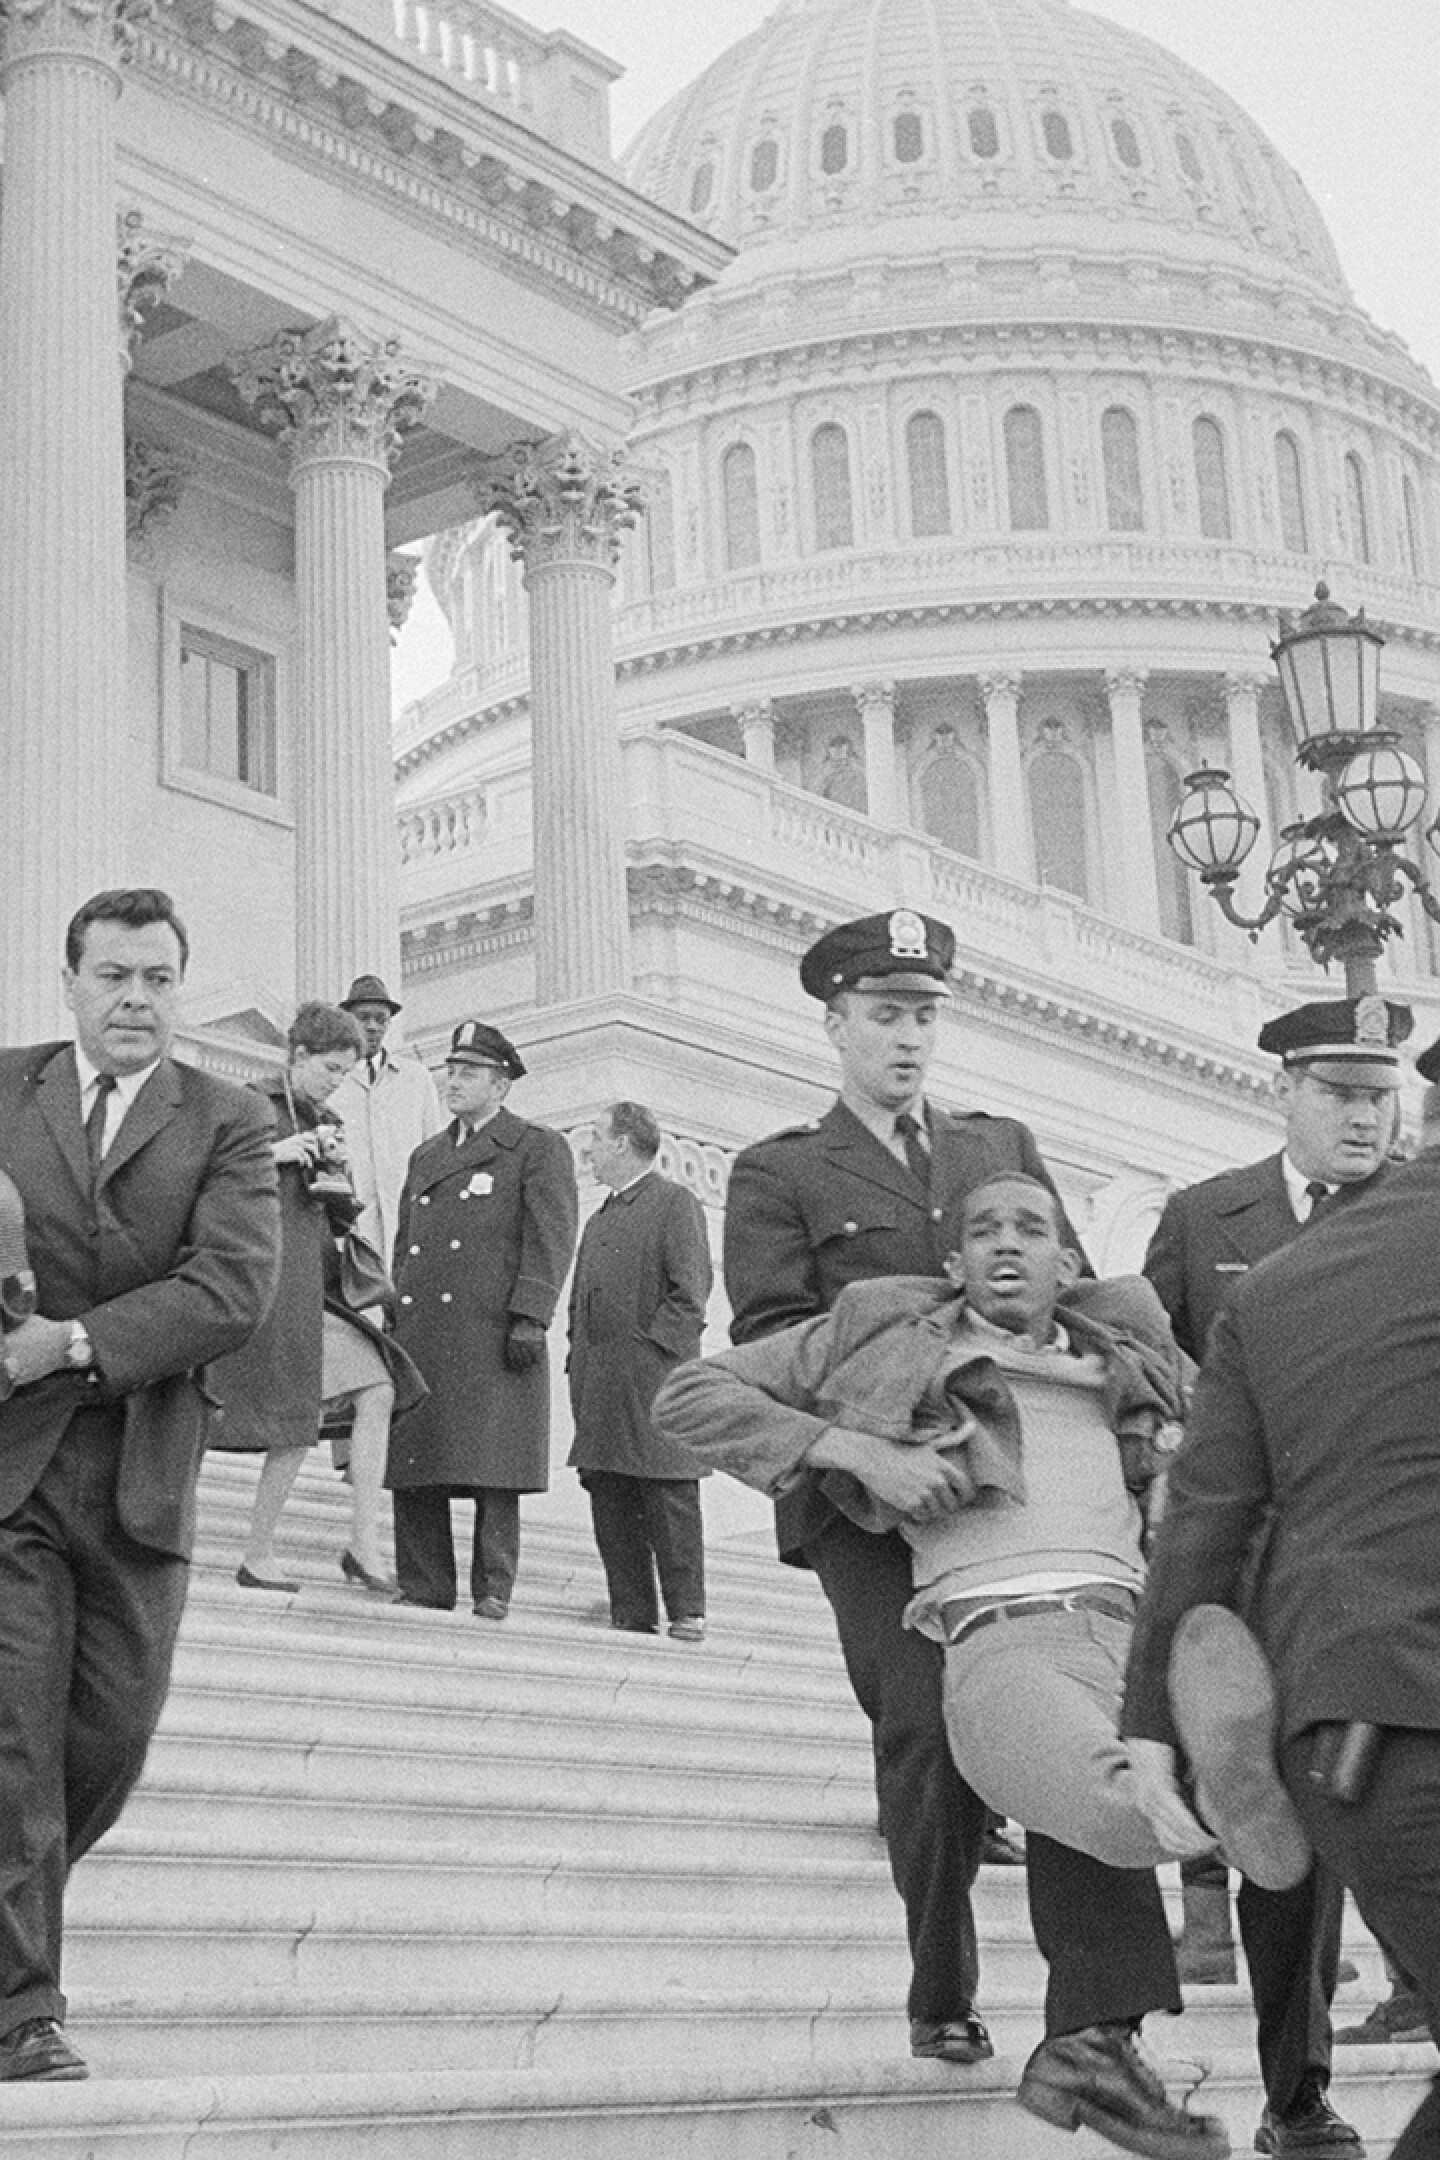 A group of civil rights demonstrators staging a sit-in at the U.S. Capitol on March 15, 1965 featured in POWER & HEALTH.   Courtesy of Warren K. Leffler